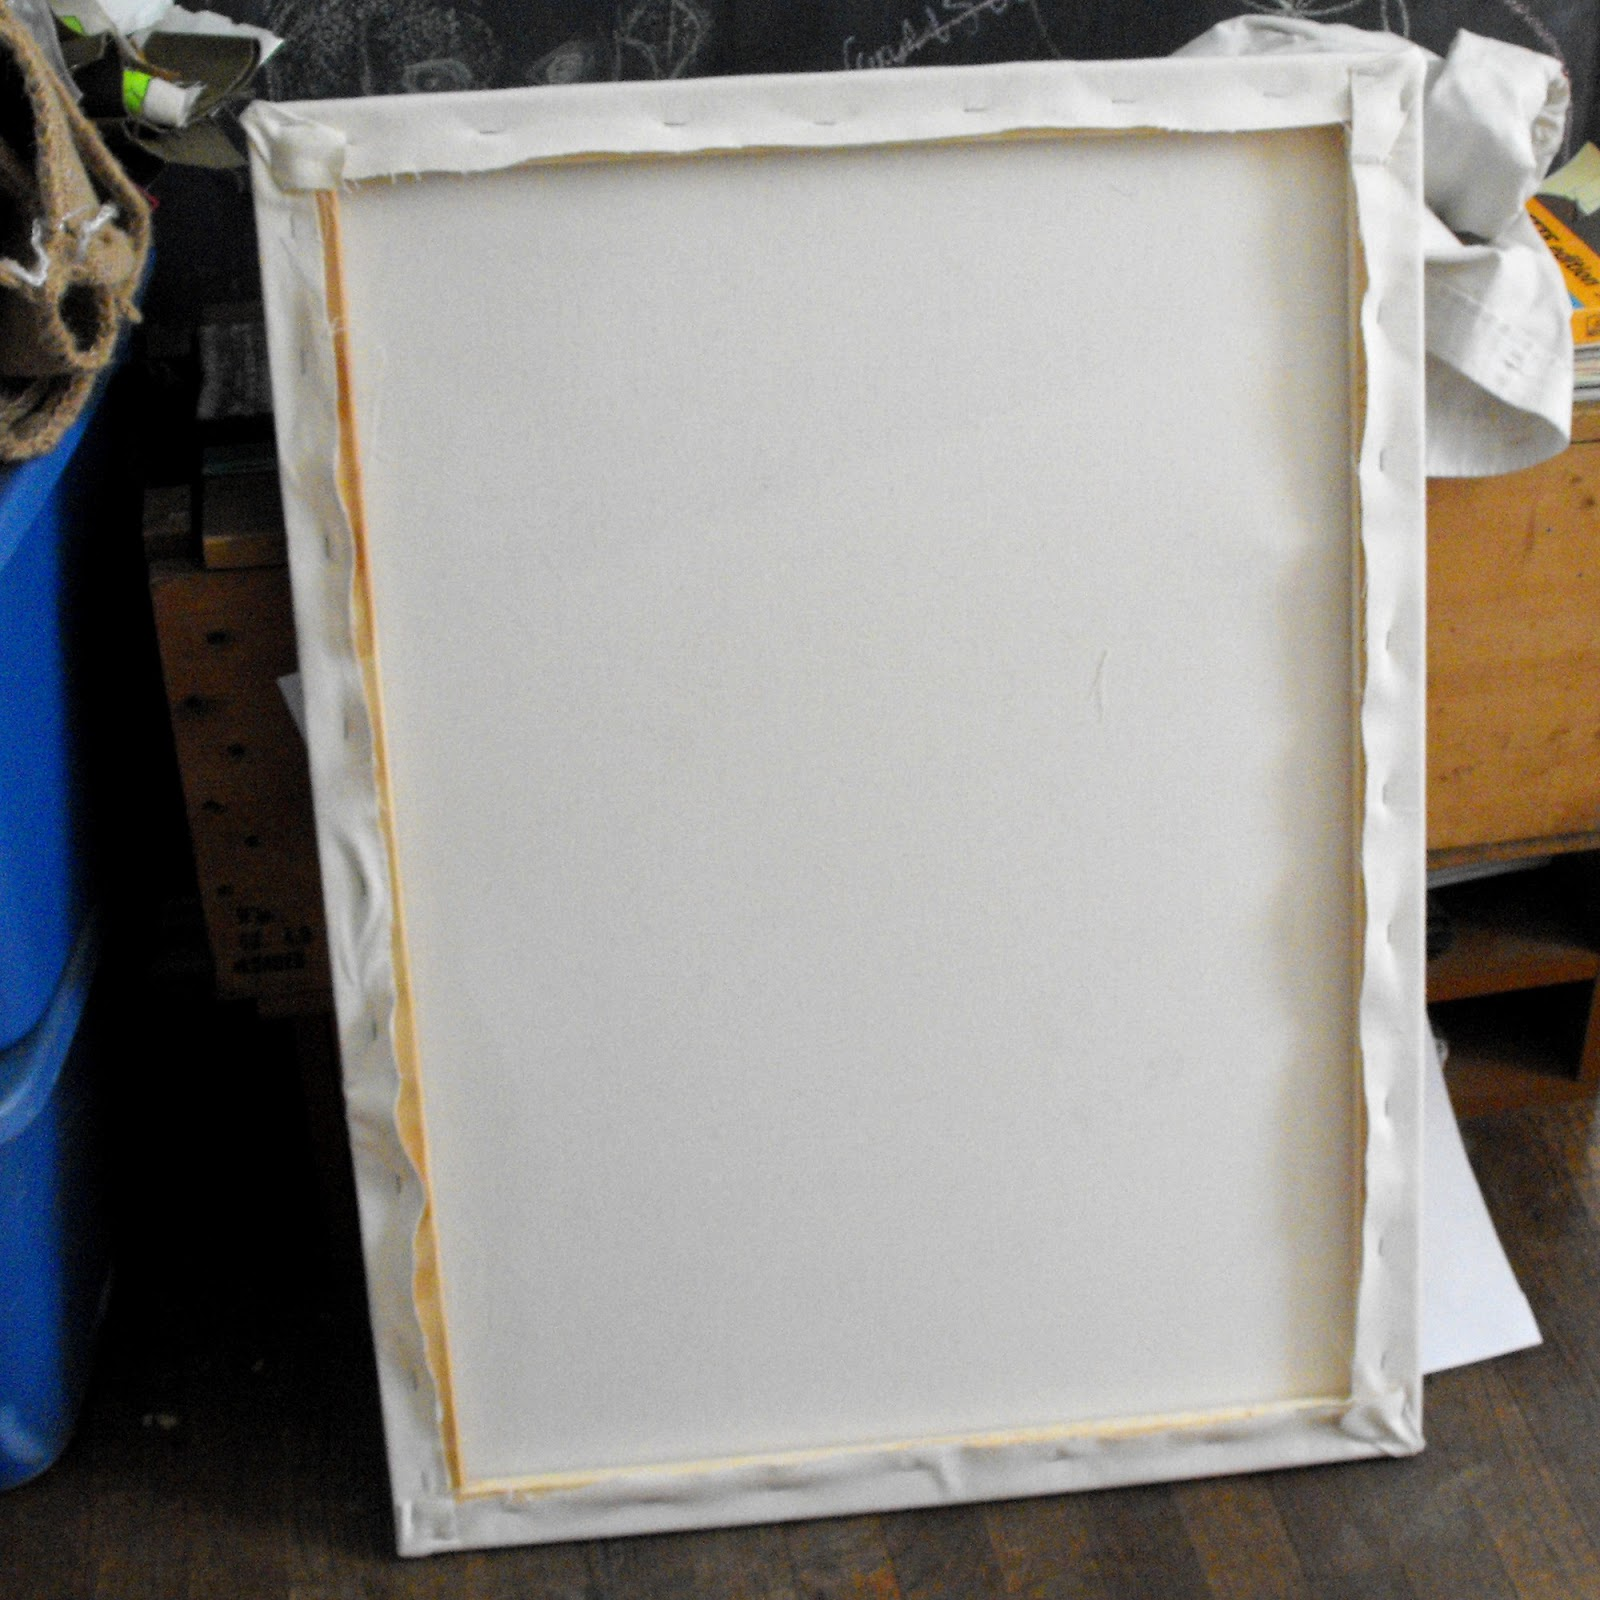 i made my own canvas with 24 and 32 stretcher bars and light tan canvas you could buy a pre made canvas too but it s usually cheaper to make your own if